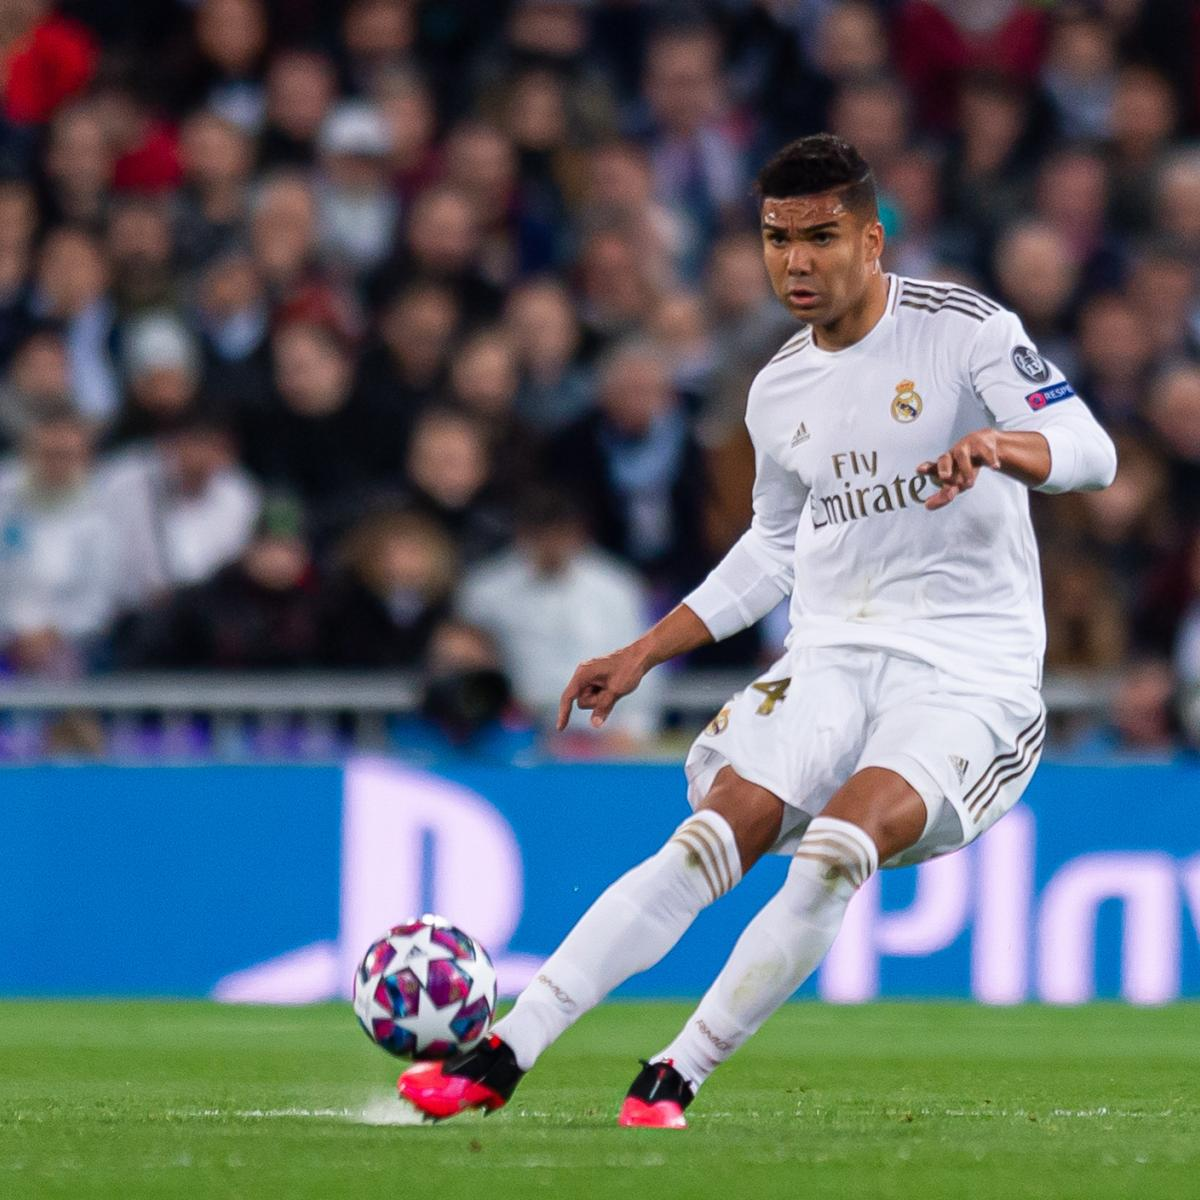 Casemiro: 'The Tie Isn't Over' After Real Madrid's 2-1 Loss to Manchester City